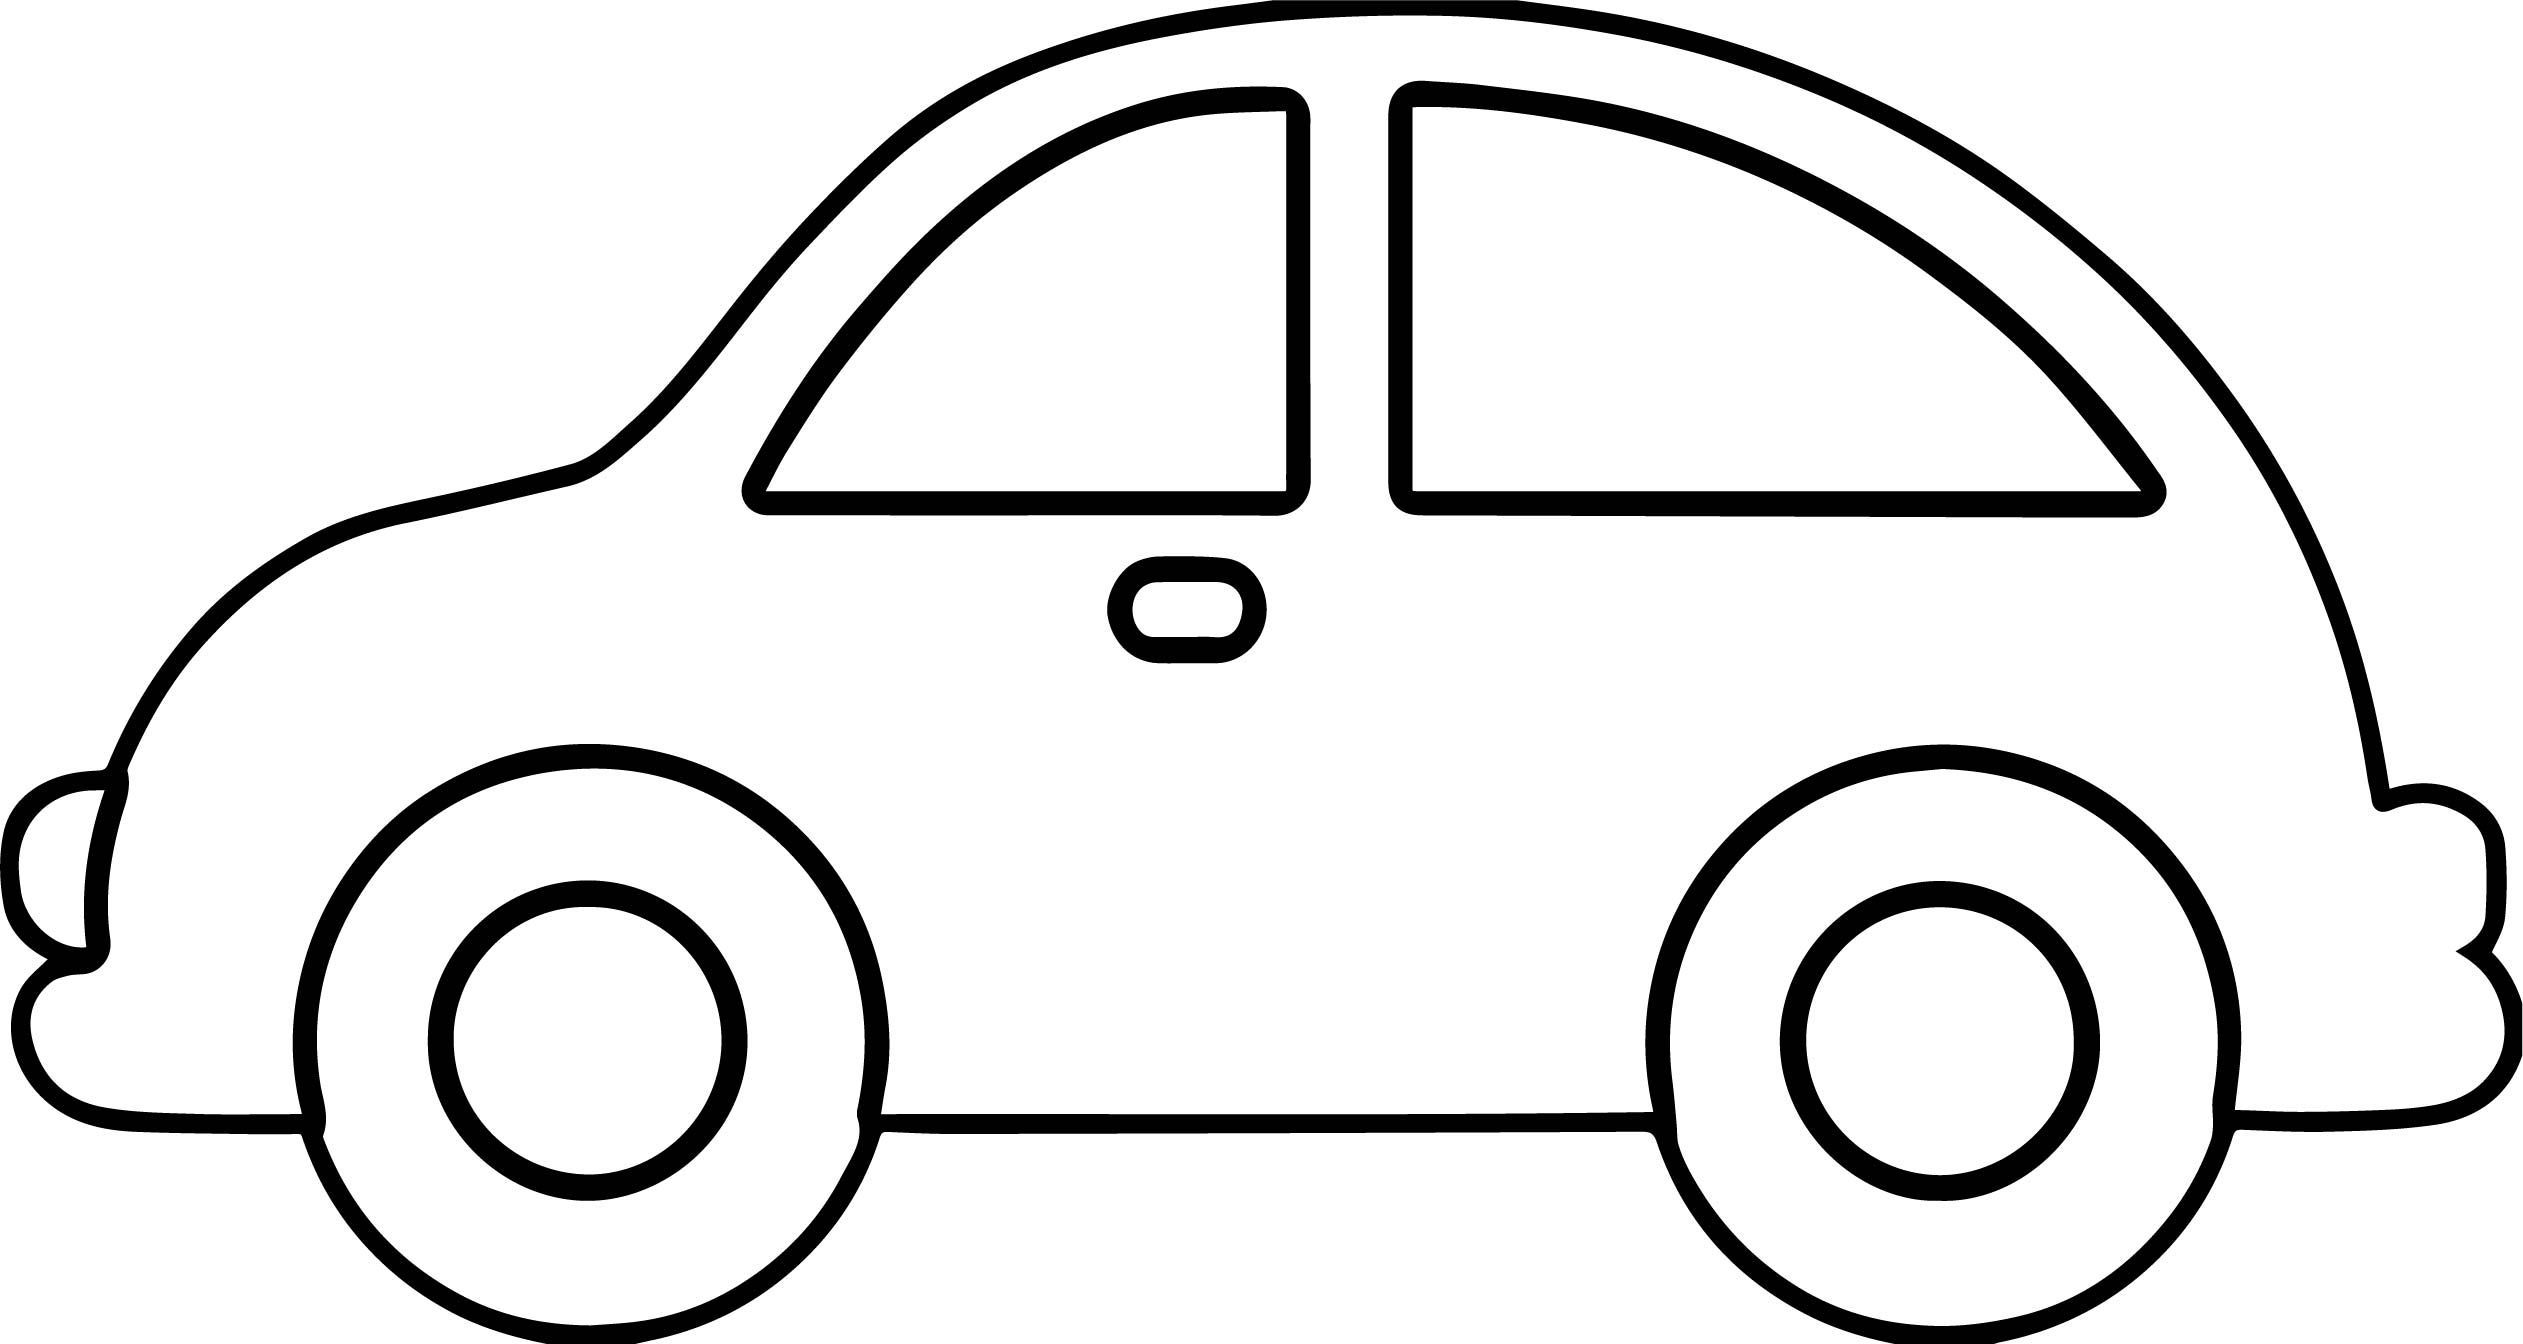 Vintage Antique Outline Car Coloring Page In 2020 Simple Car Drawing Black And White Cartoon Cars Coloring Pages